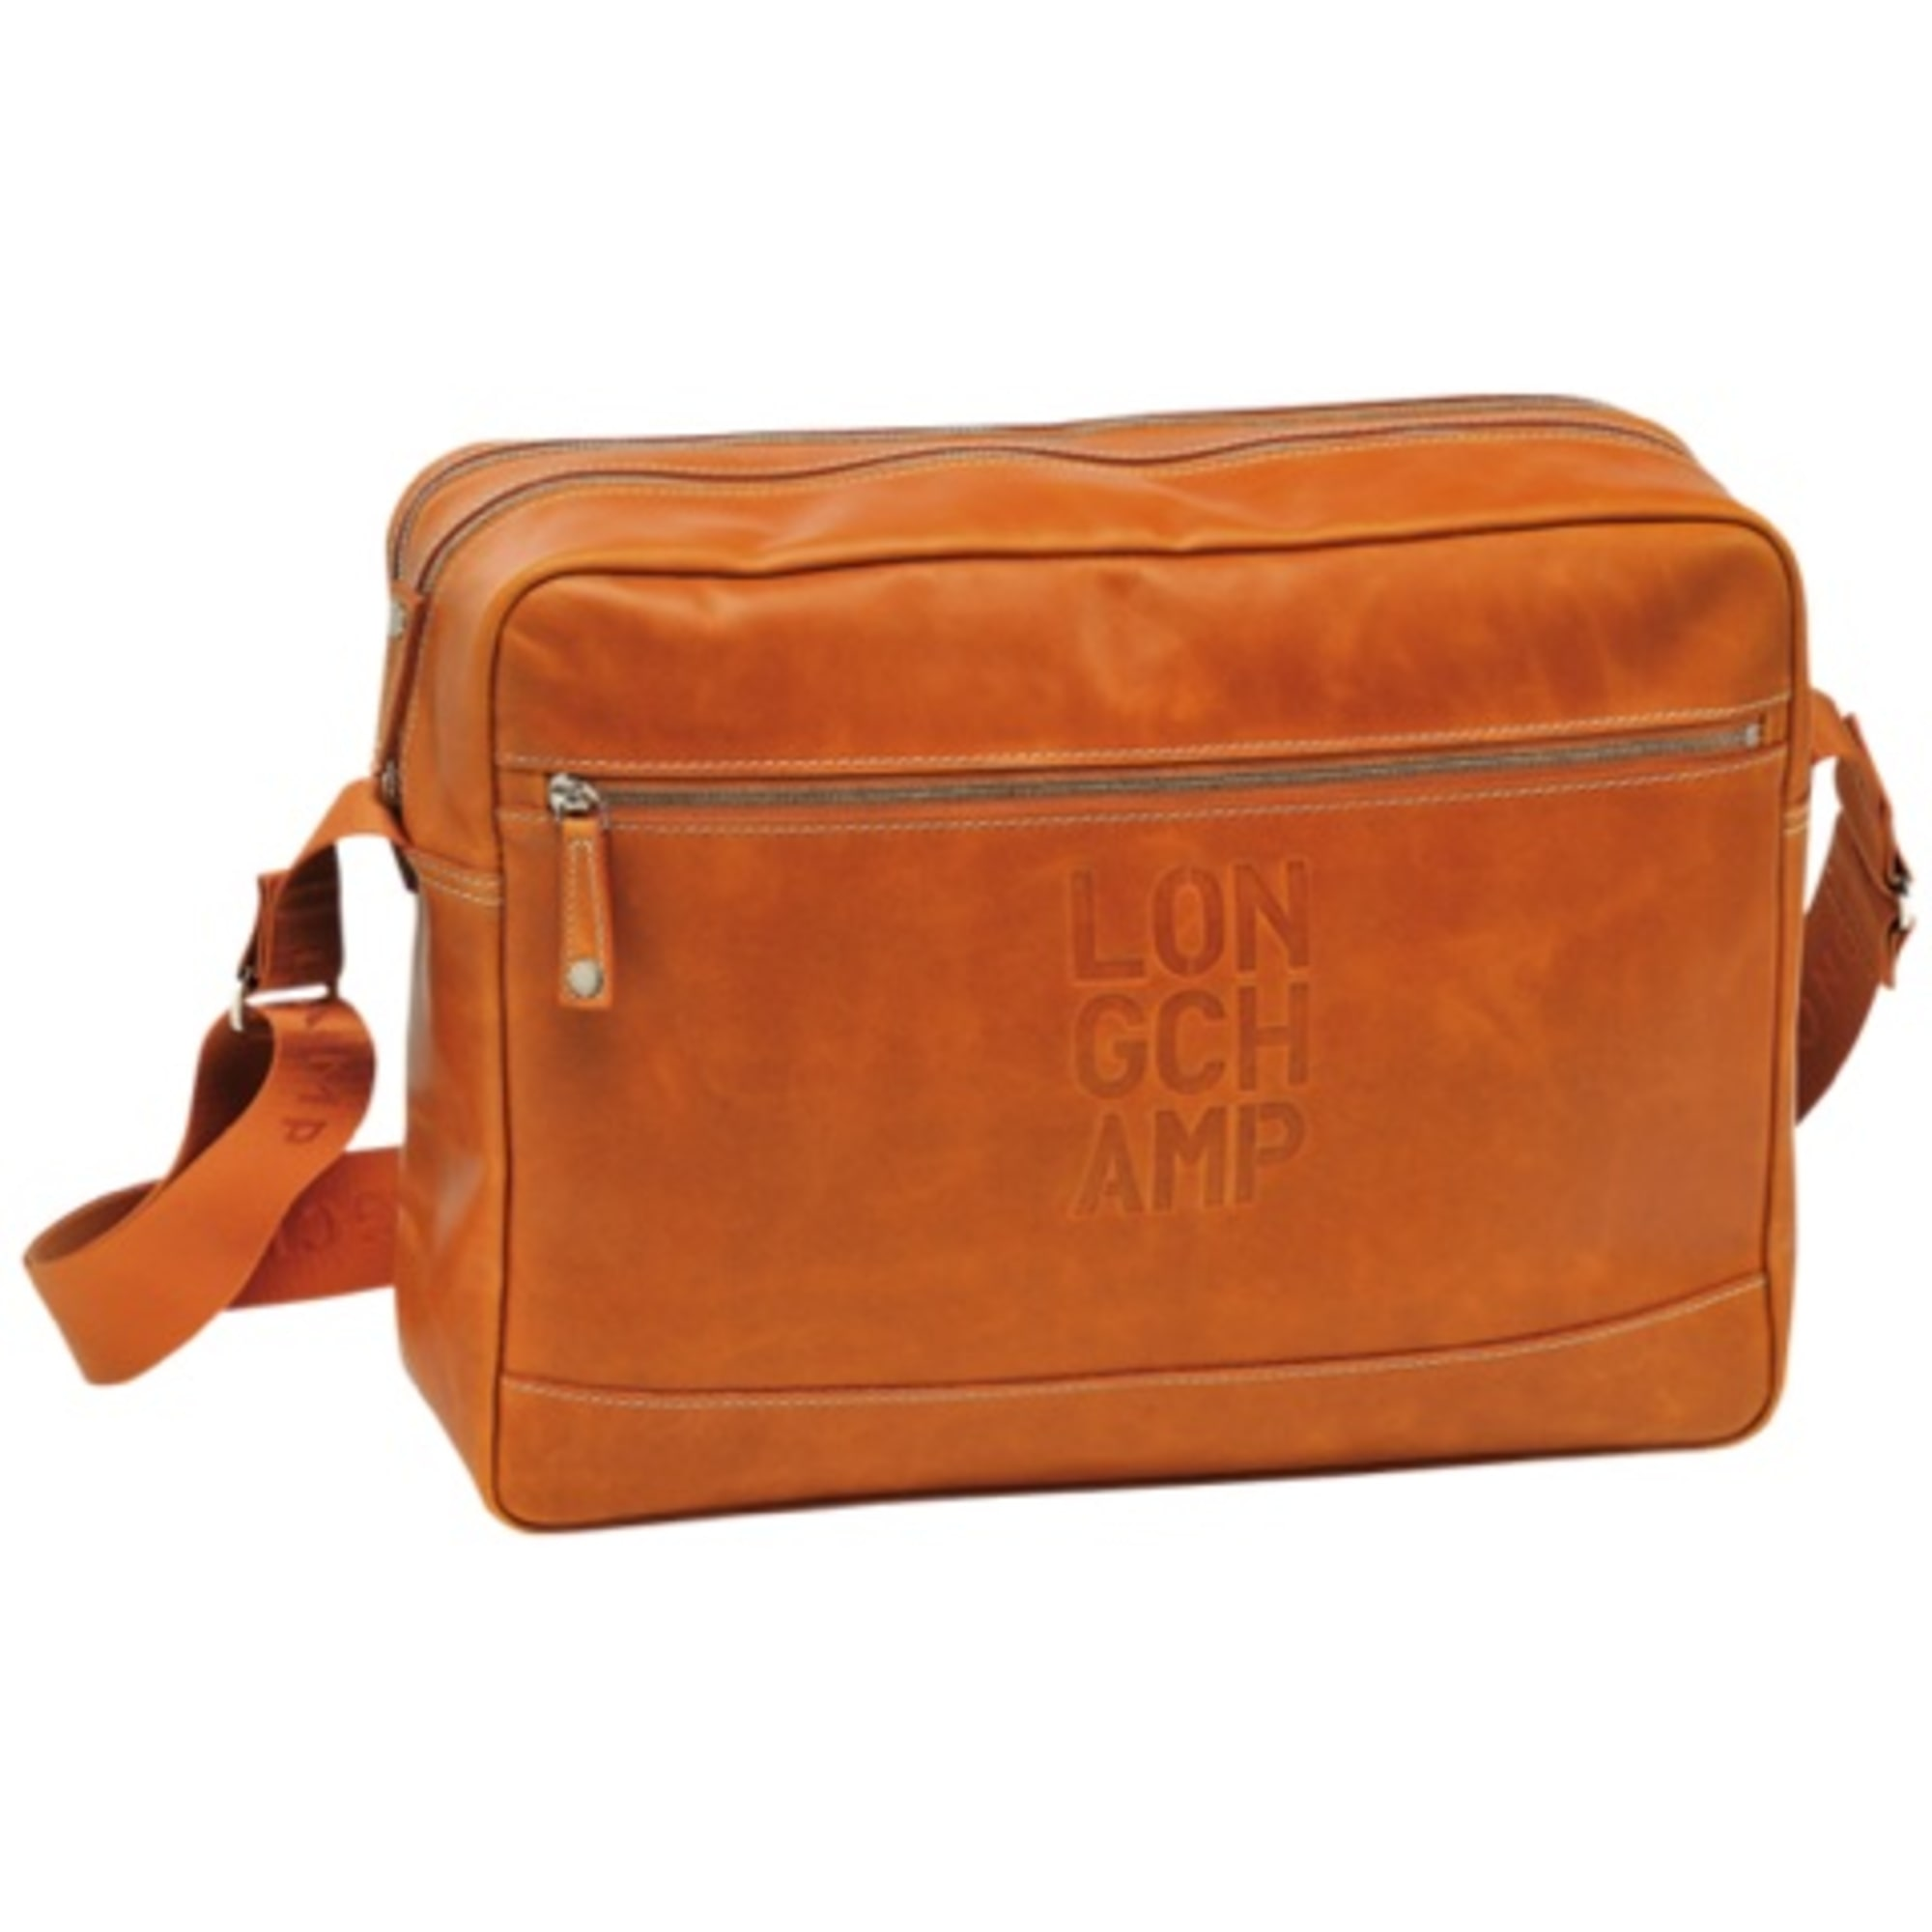 bef78e50bb Sac en bandoulière LONGCHAMP orange - 2165884